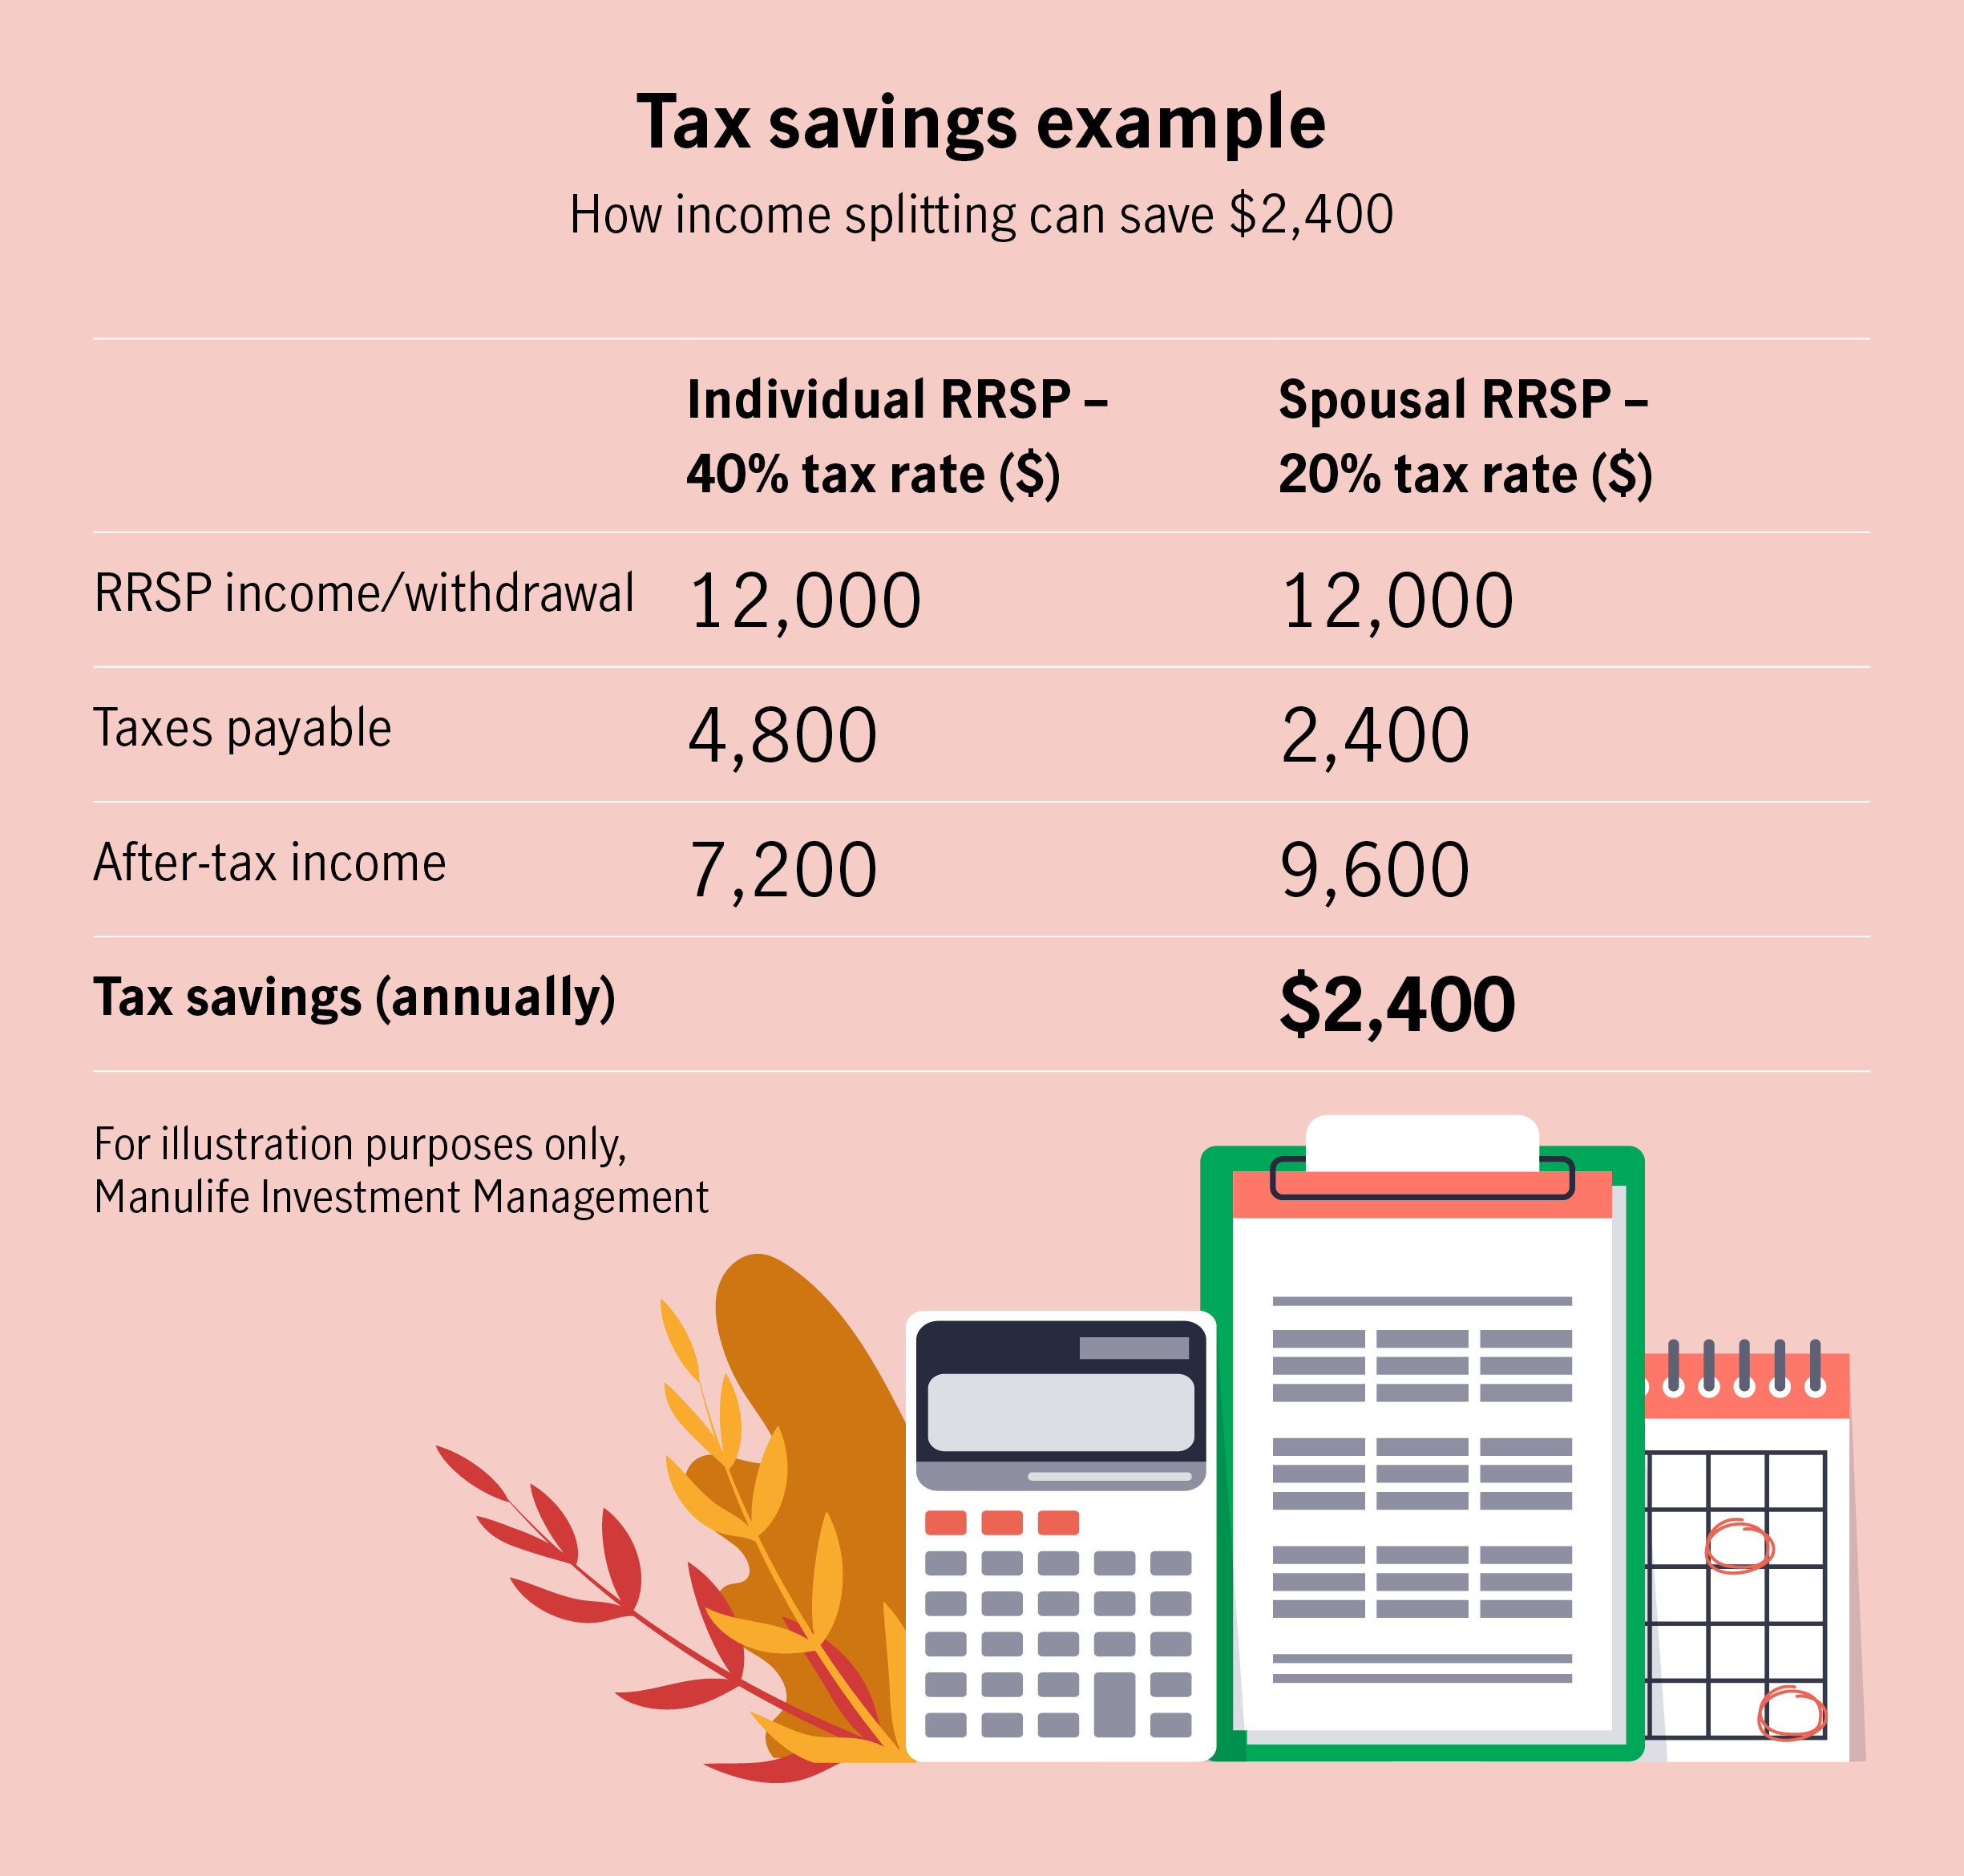 Tax savings example  How income splitting can save $2,400   Individual RRSP – 40% tax rate ($)Spousal RRSP – 20% tax rate ($) RRSP income/withdrawal12,00012,000 Taxes payable4,8002,400 After-tax income7,2009,600 Tax savings (annually) $2,400  For illustration purposes only, Manulife Investment Management